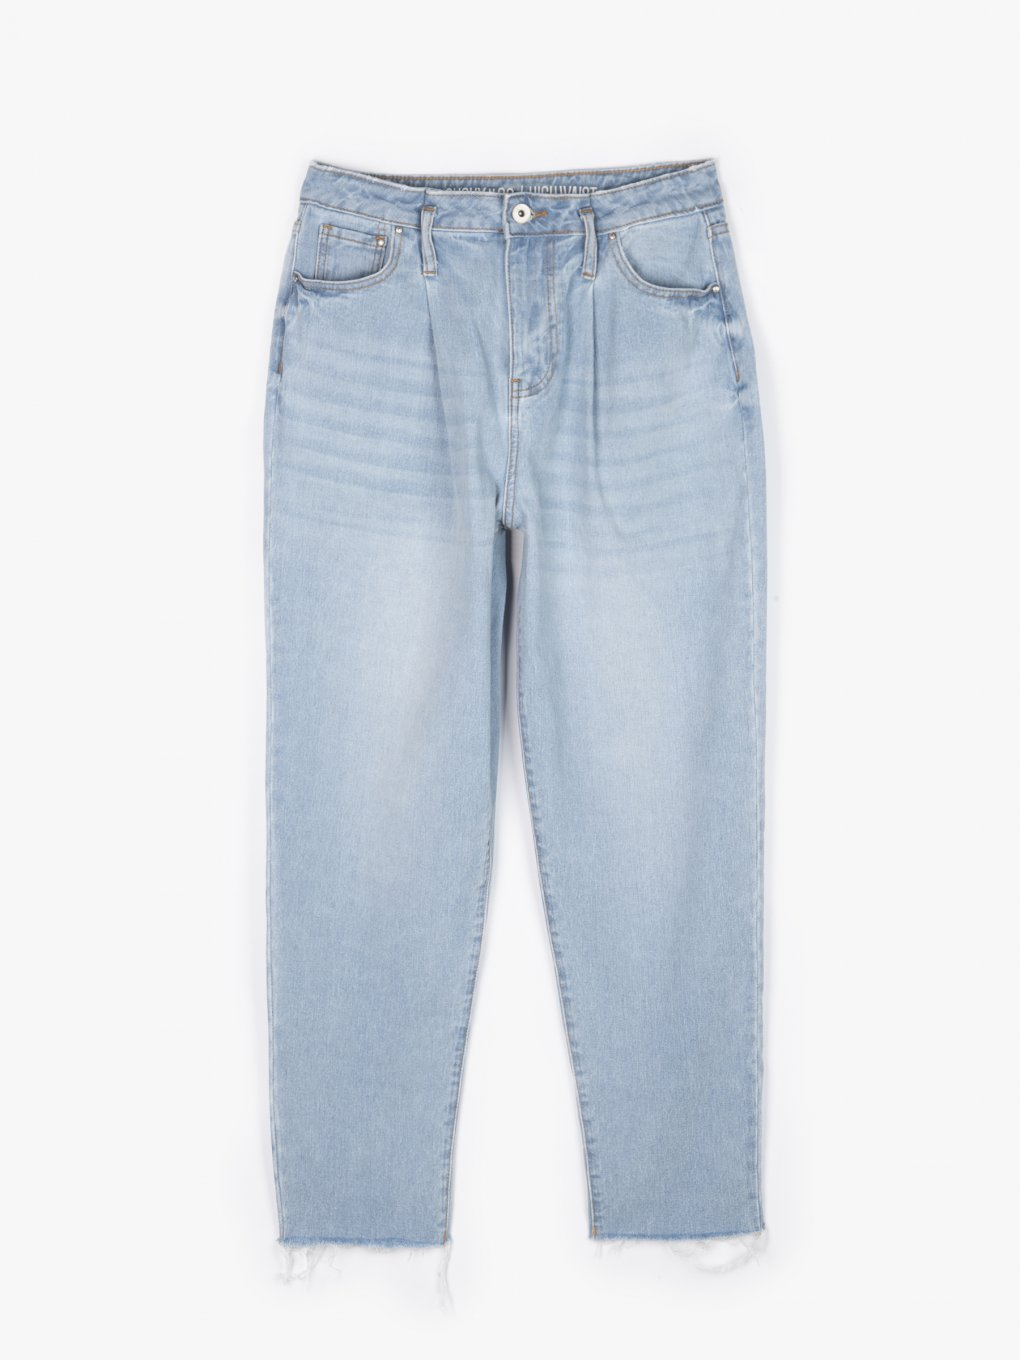 Cotton slouchy jeans